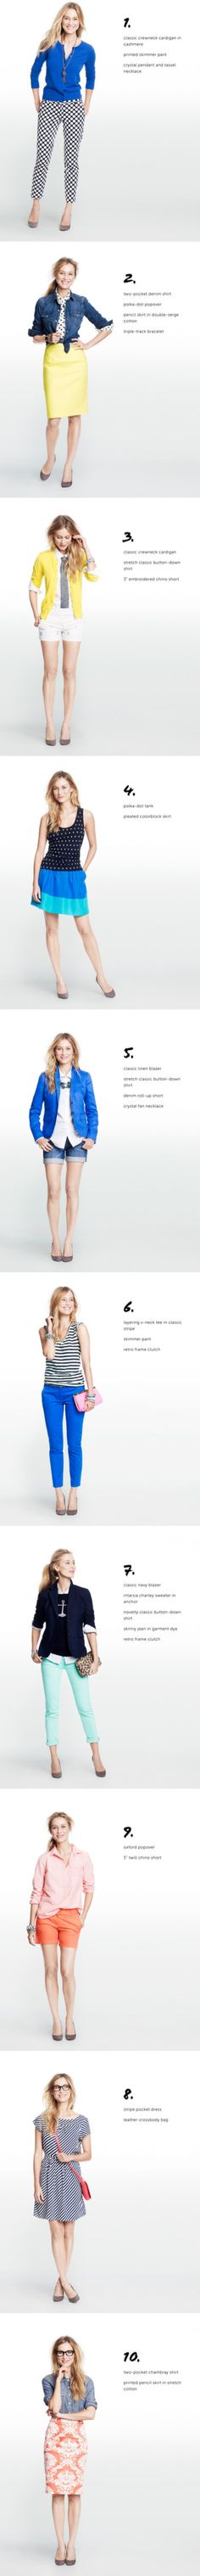 """""""JCrew Factory Outfit Obessions Dec 2012"""" by justvisiting ❤ liked on Polyvore"""